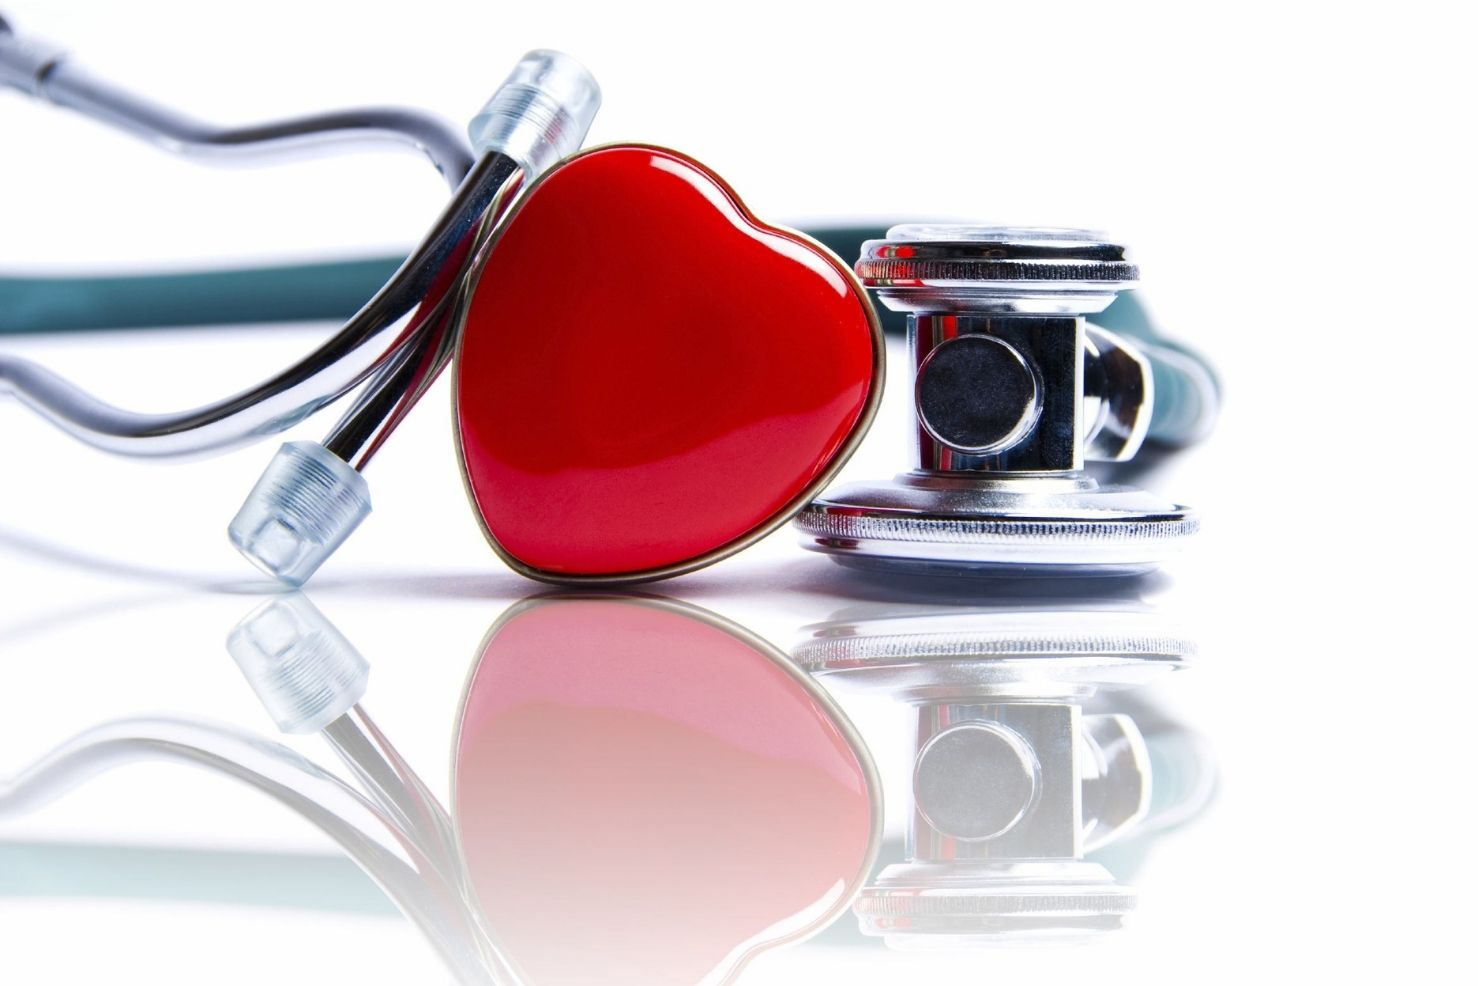 11th Annual Orange County Symposium for Cardiovascular Disease Prevention